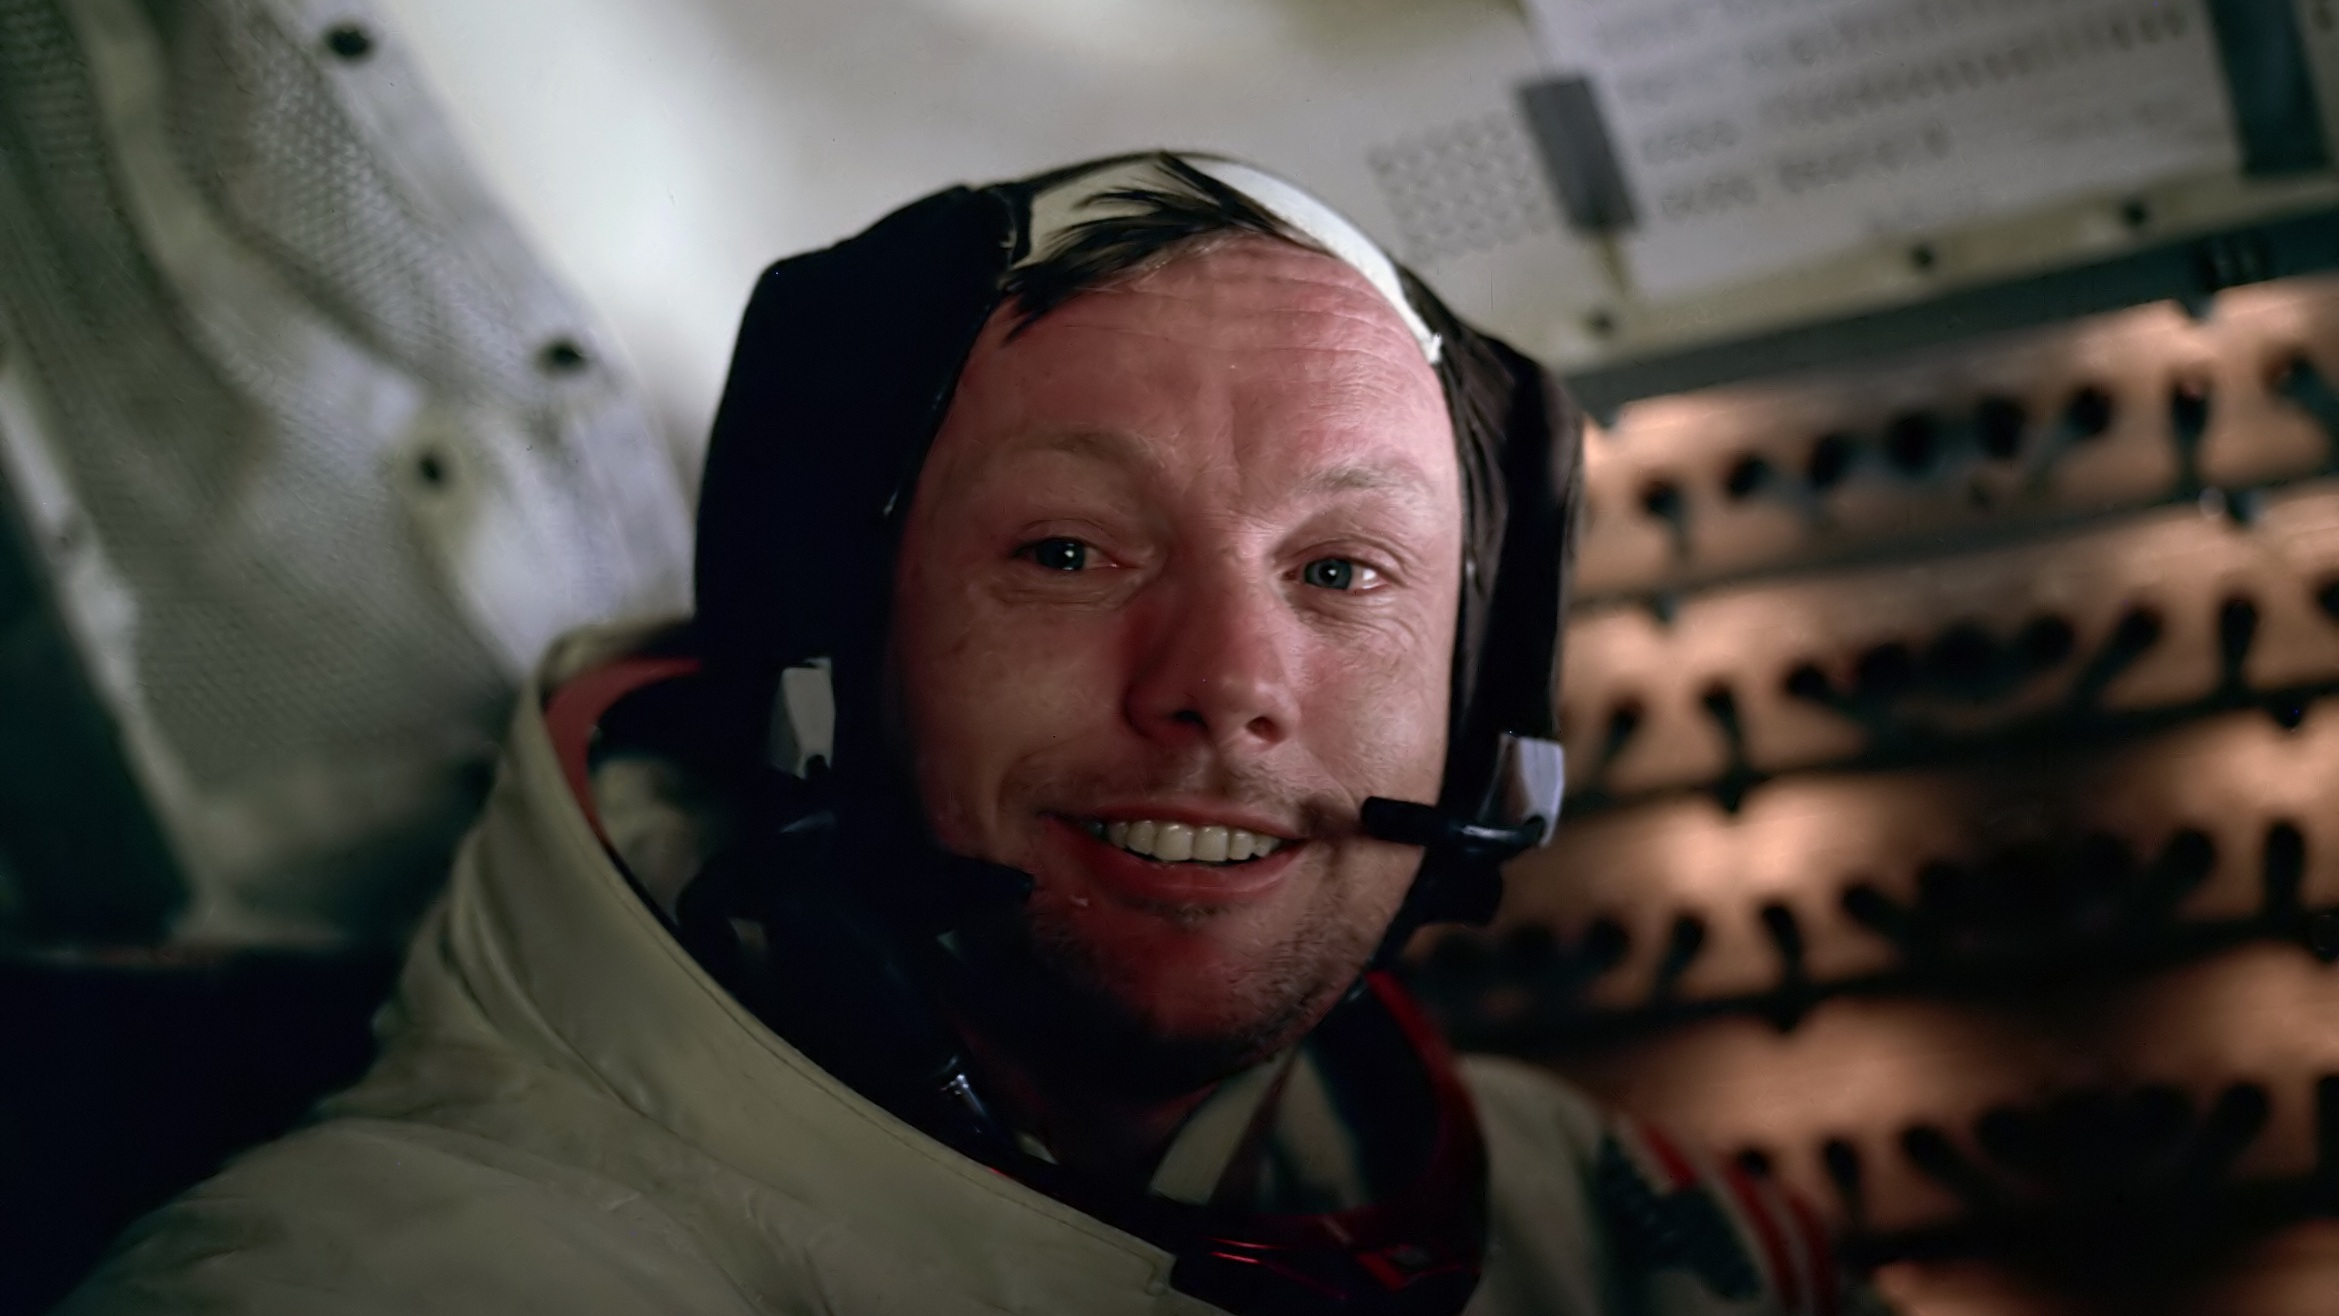 Neil Armstrong (1930-2012) aboard the lunar module after his first walk on the moon.